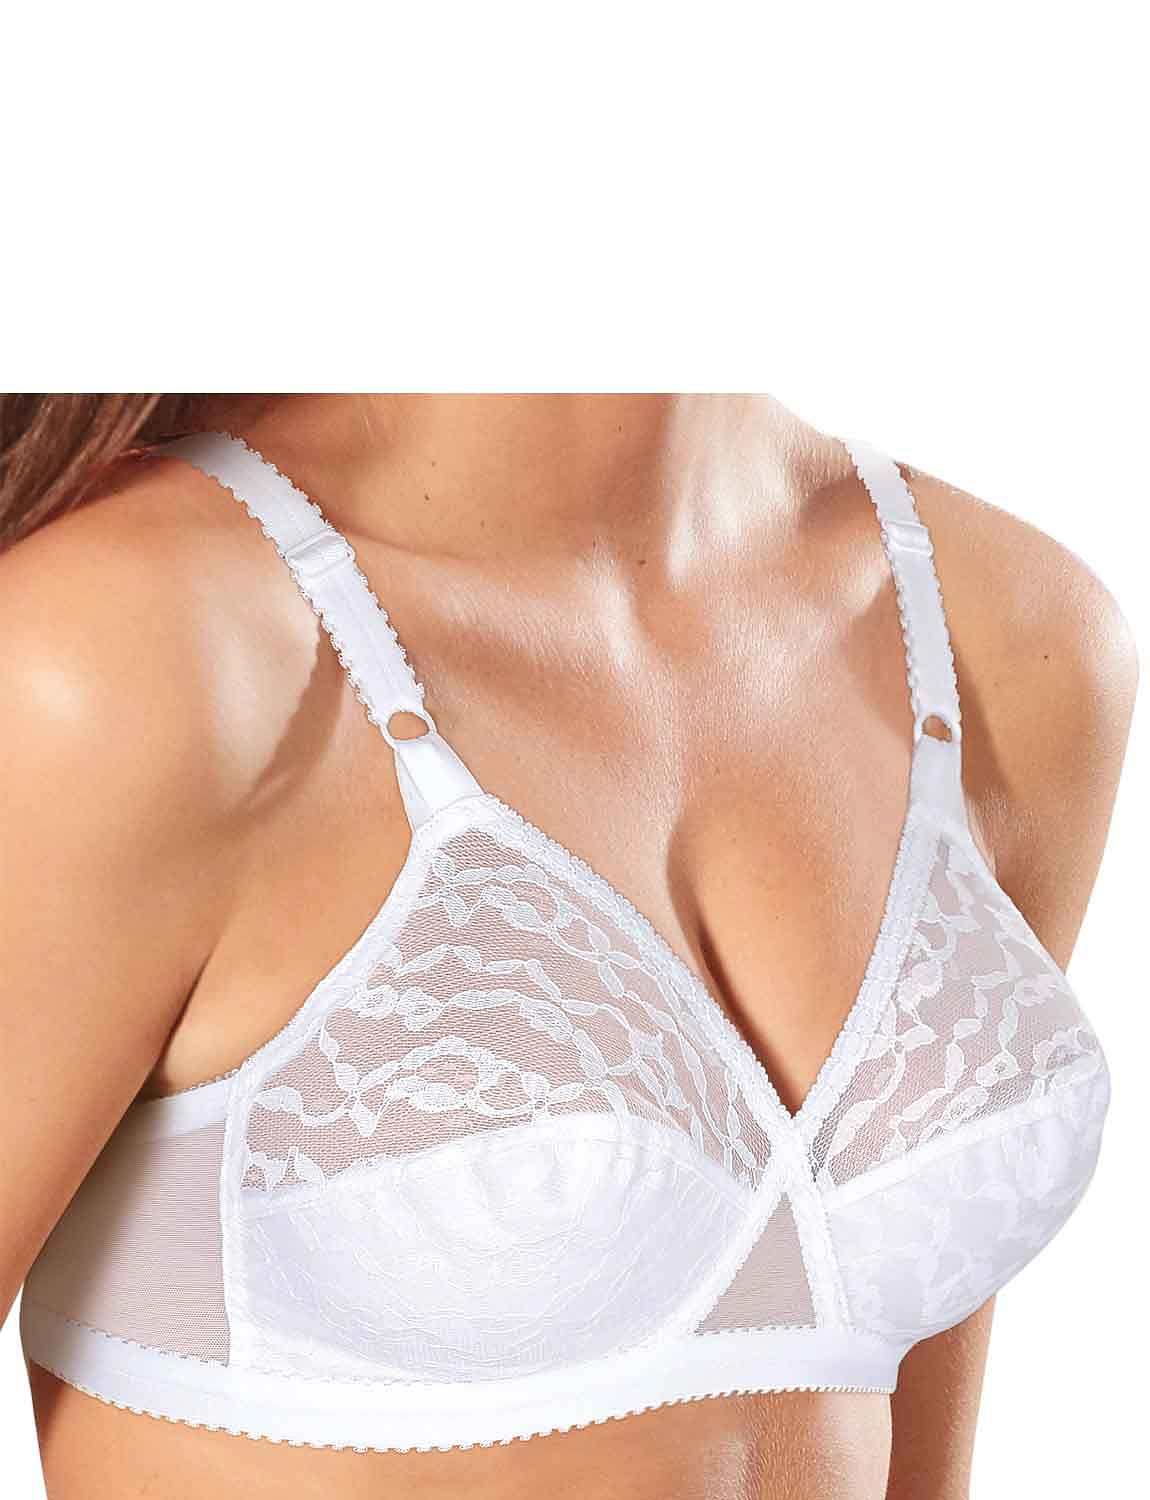 cf49fcdad90b4 Pack Of Two Playtex Lace Bras - Ladieswear Underwear